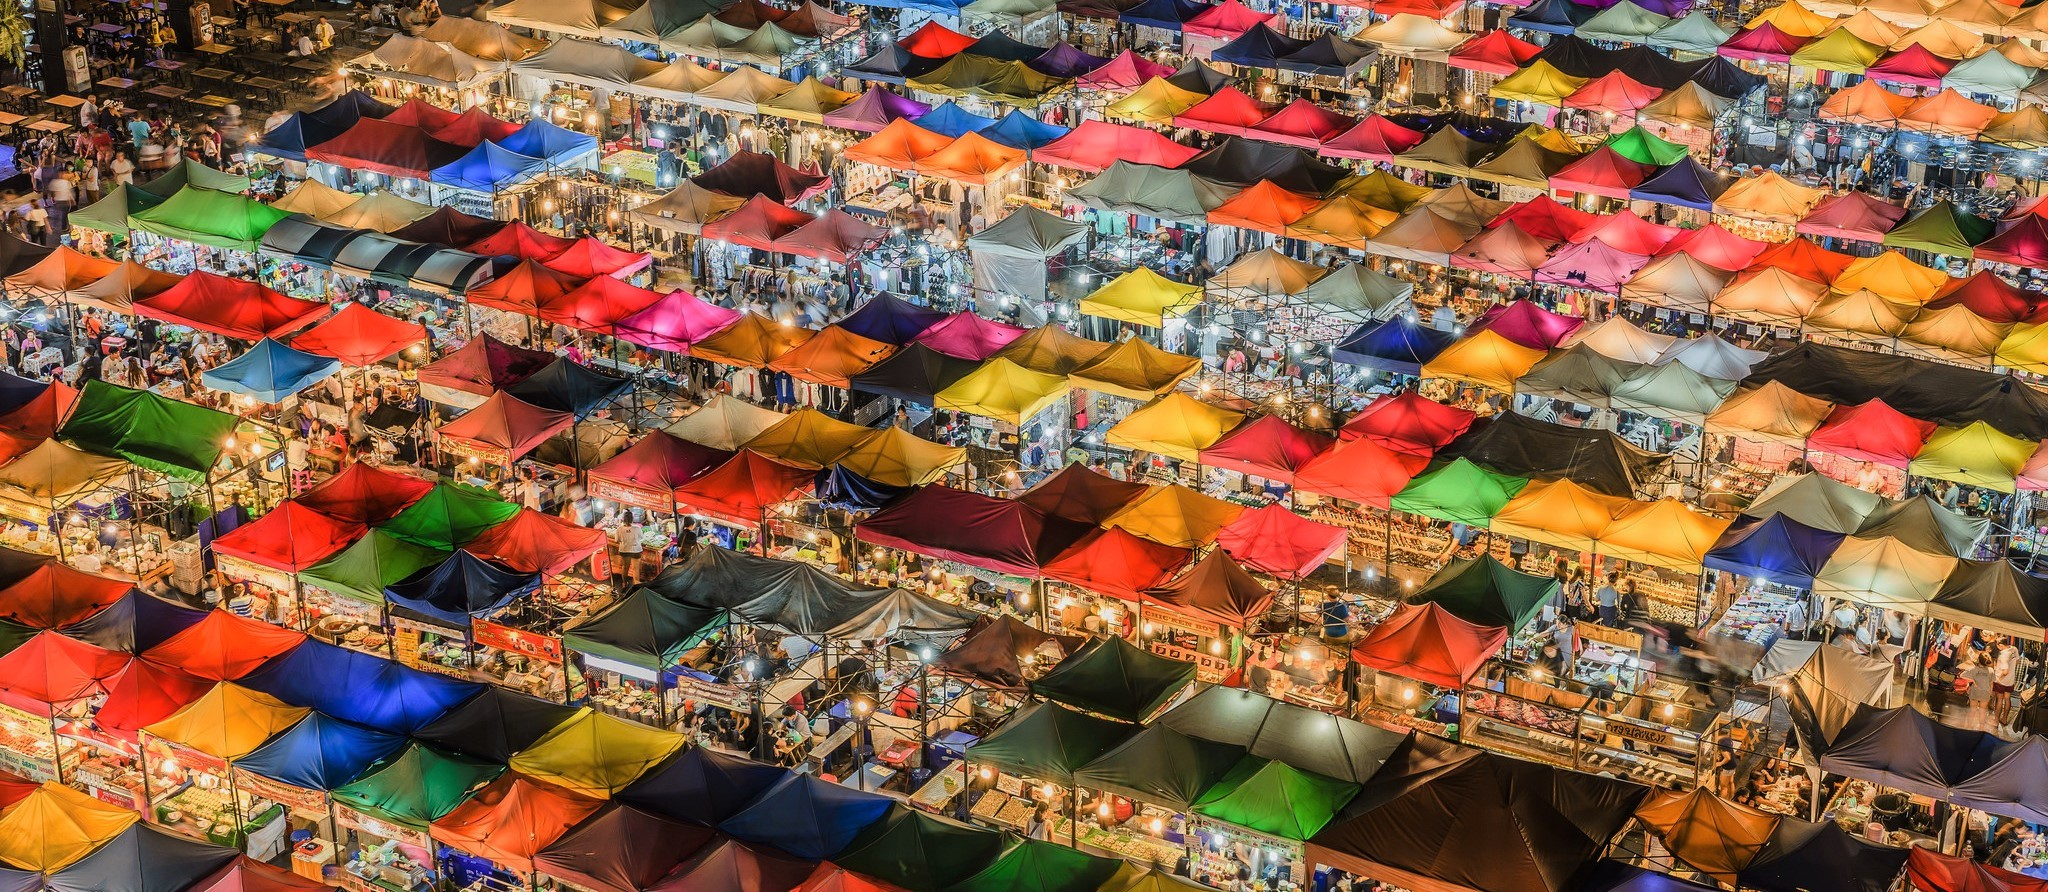 A night market in Bangkok, April 2017 (Photo: Getty Images/Aotaro)